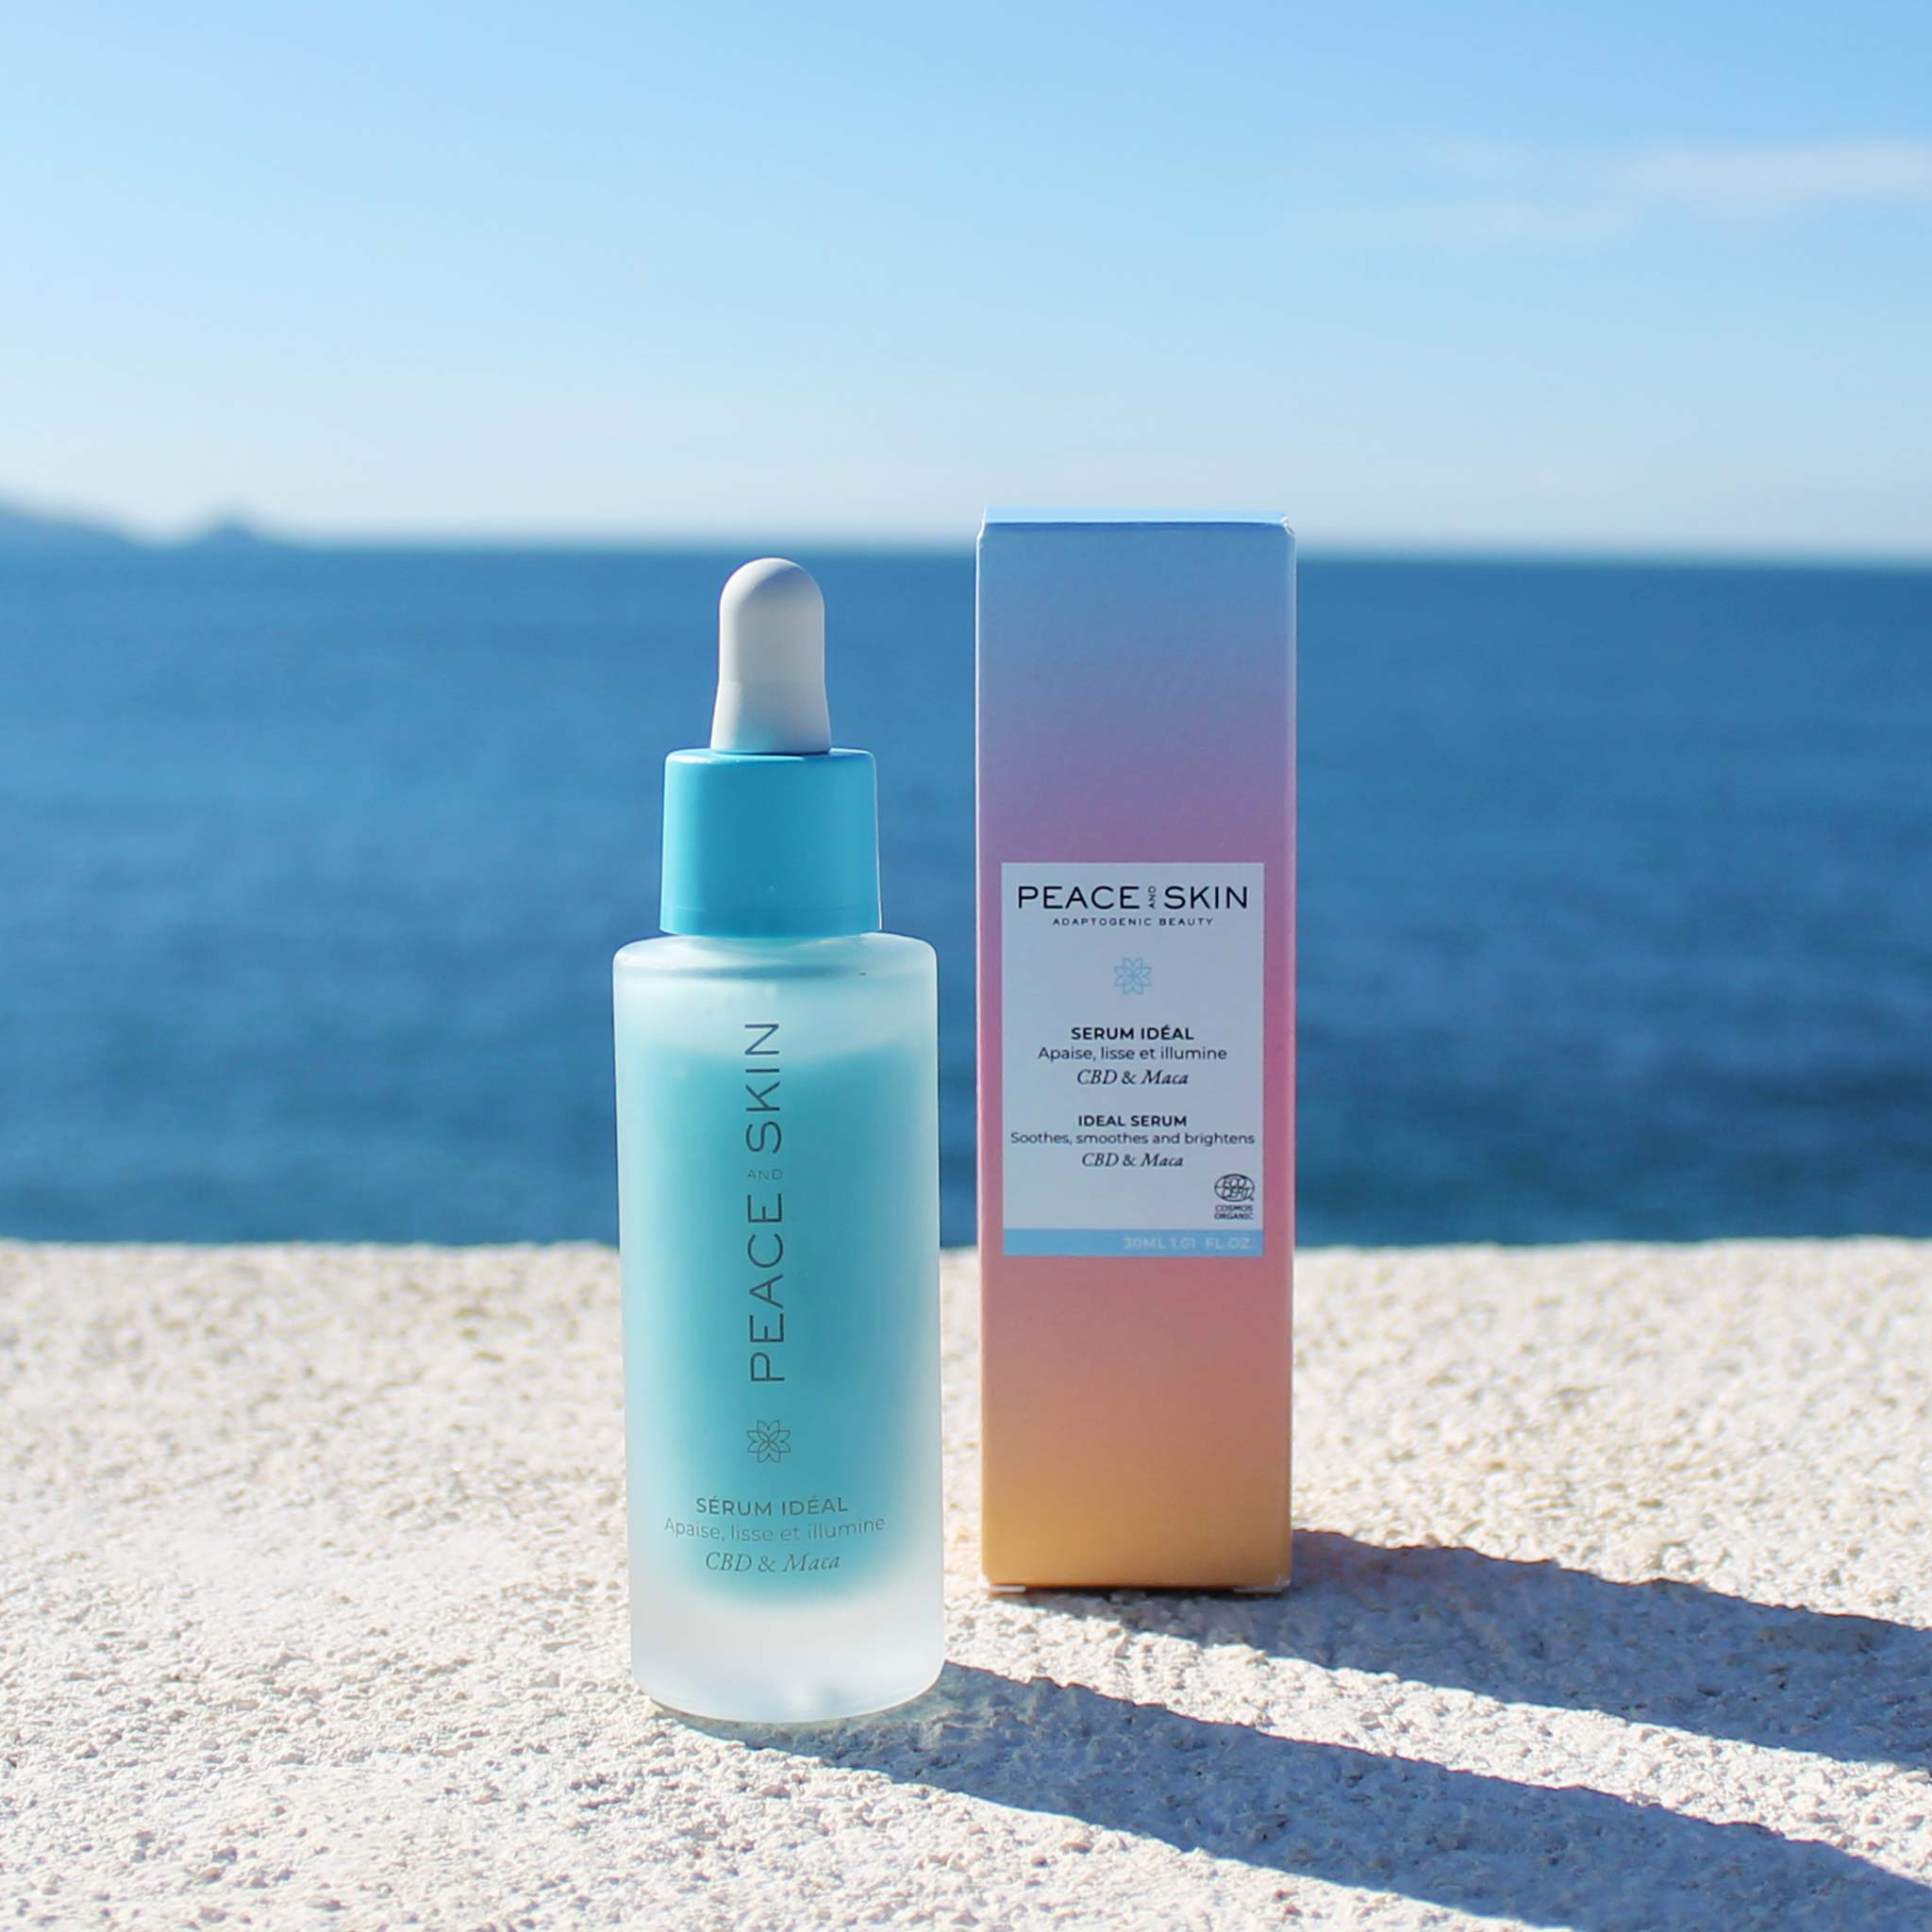 peace and skin serum ideal